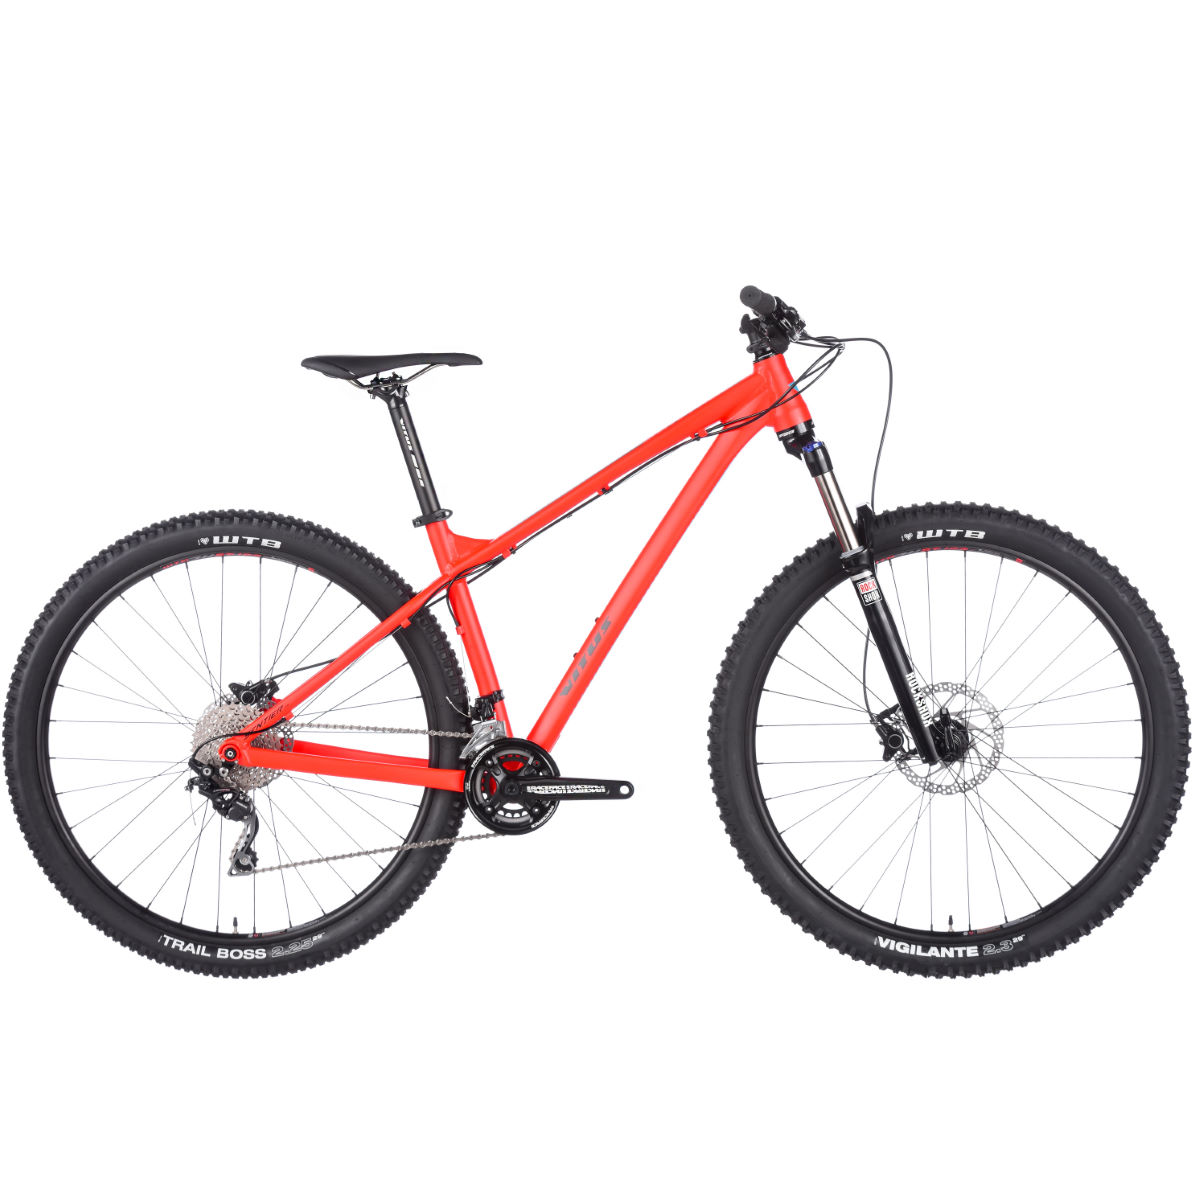 VTT Vitus Sentier 29 (2017) - Medium Stock Bike Red/Green VTT semi-rigides